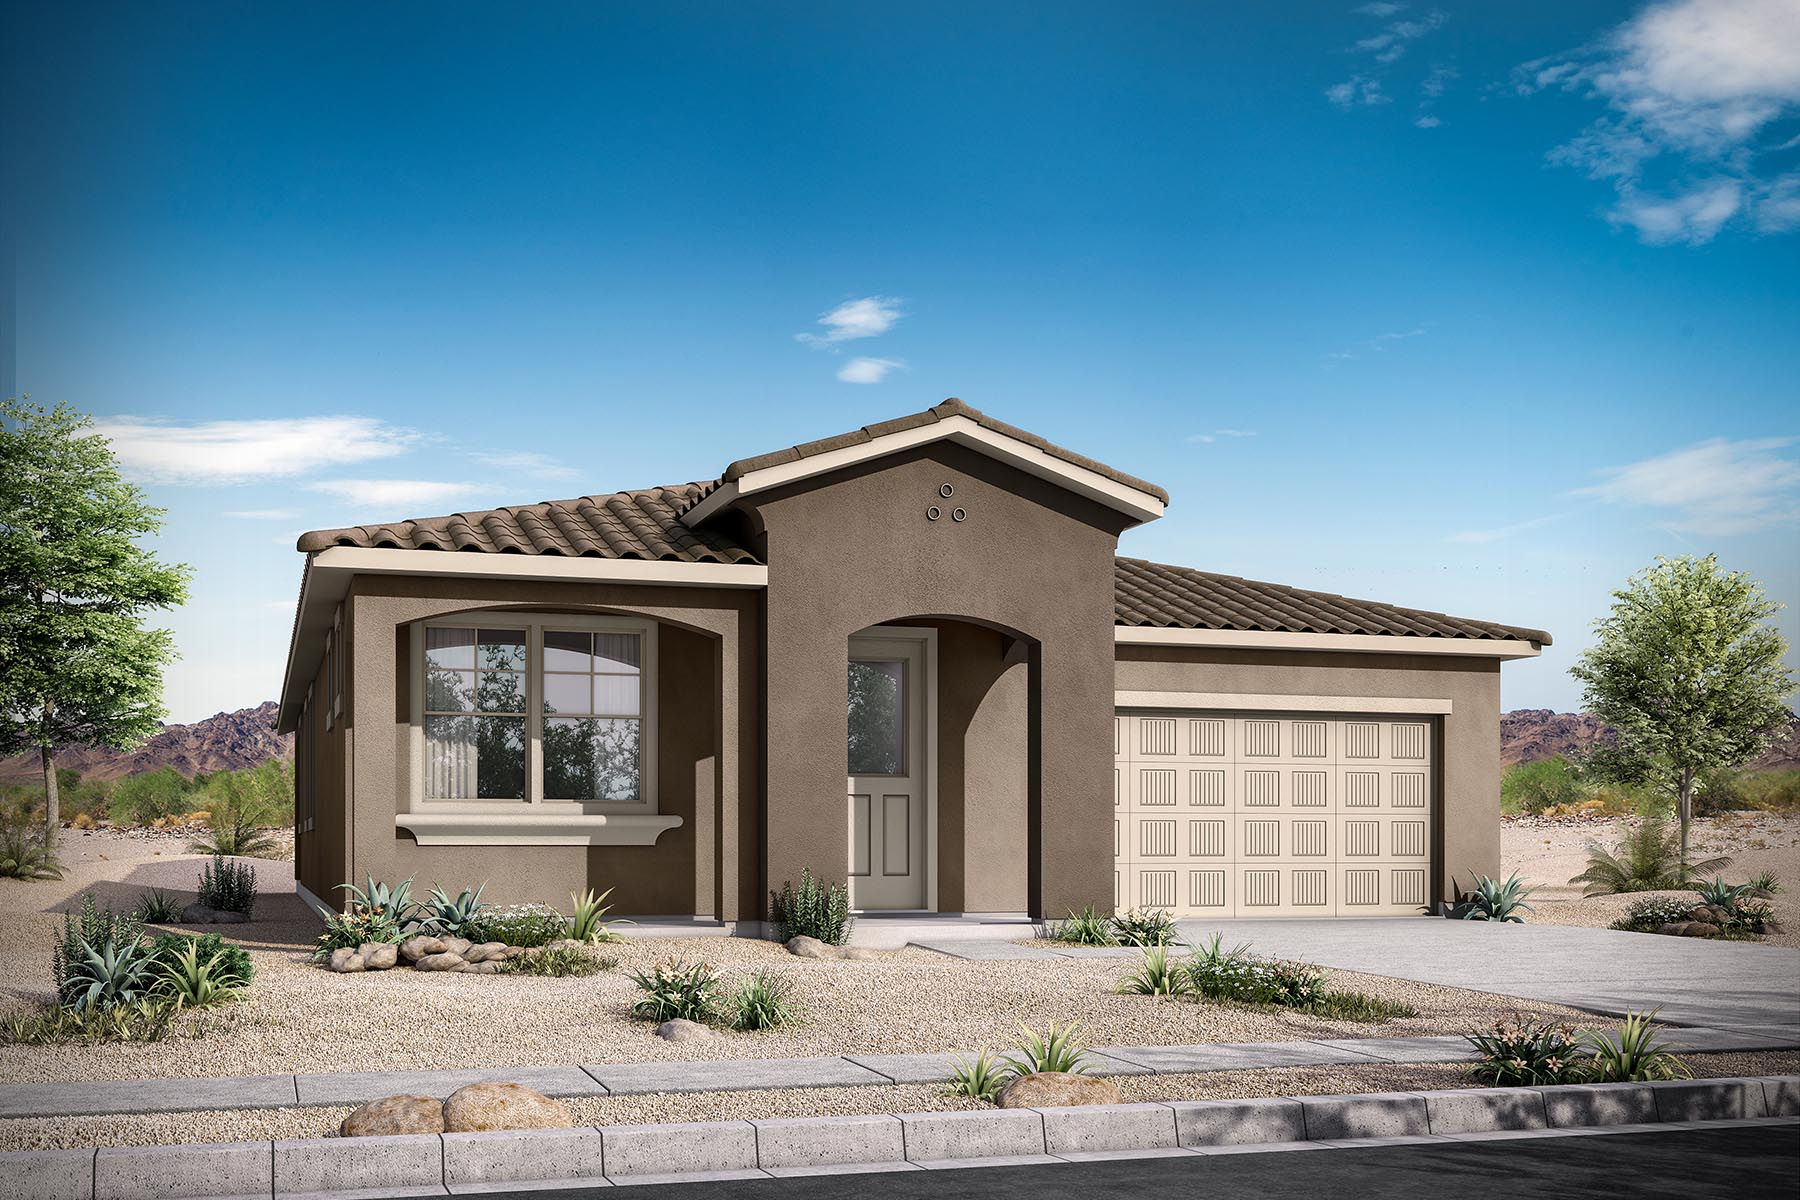 Everly Plan Elevation Front at Malone Estates - Arbors Collection in Queen Creek Arizona by Mattamy Homes